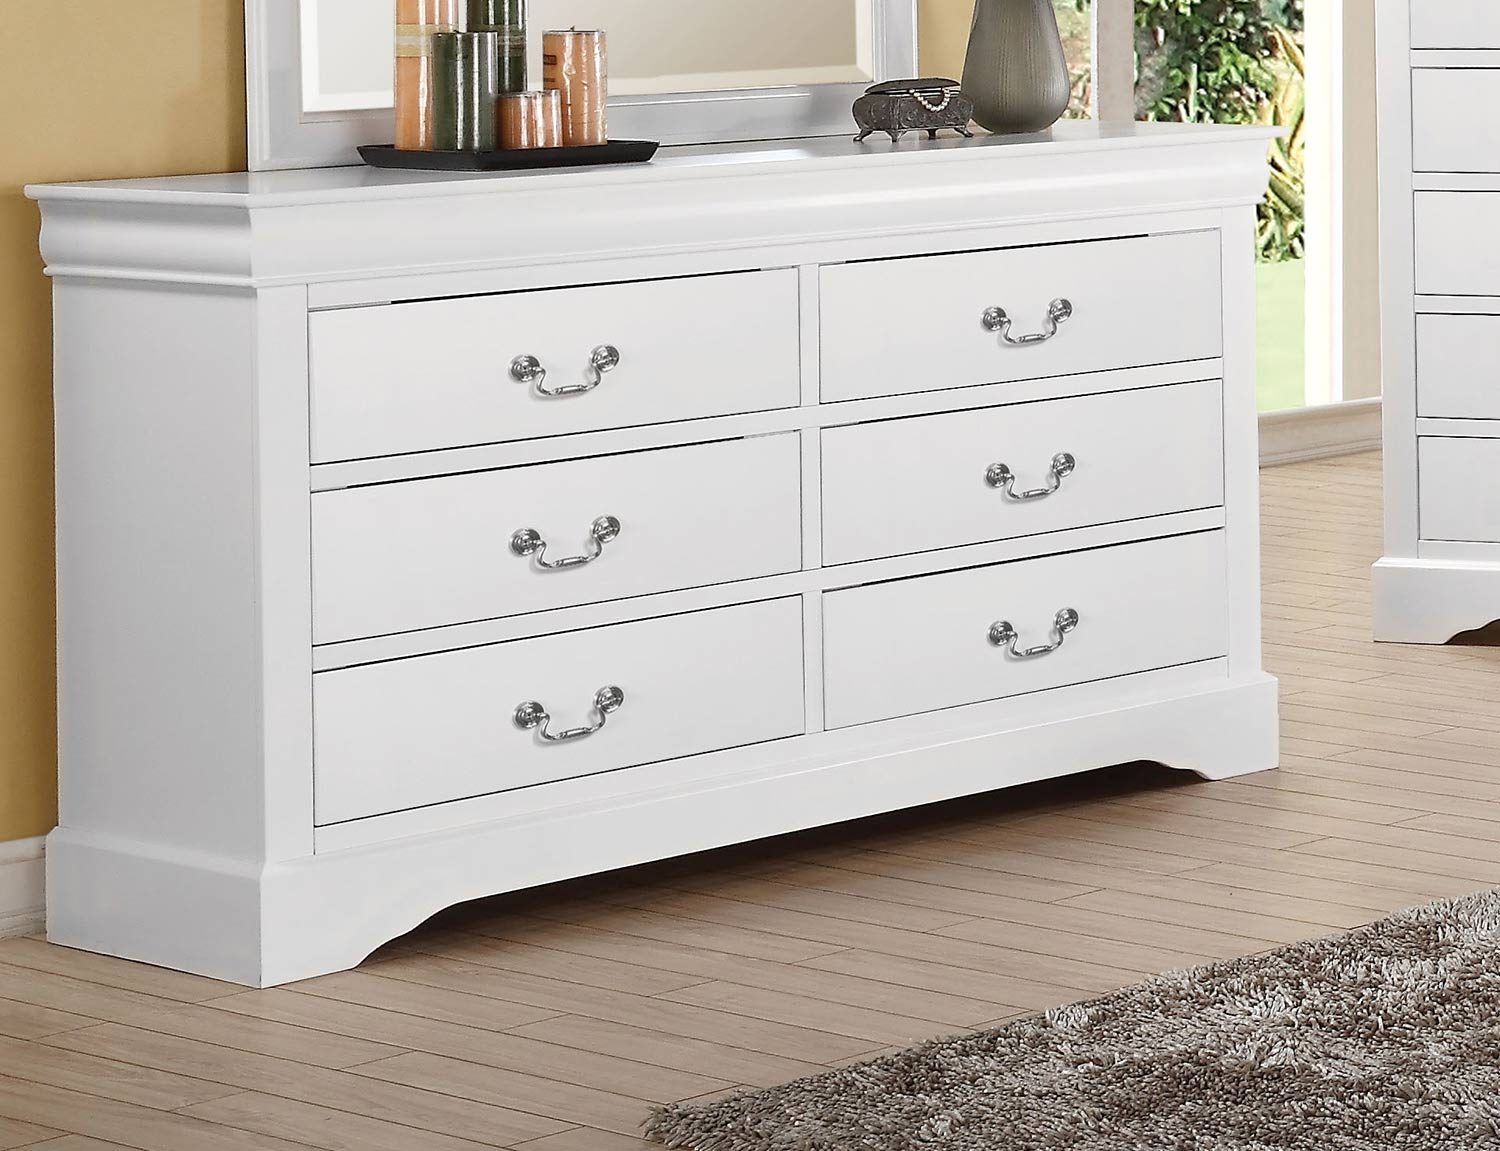 Acme Louis Philippe III Dresser - White